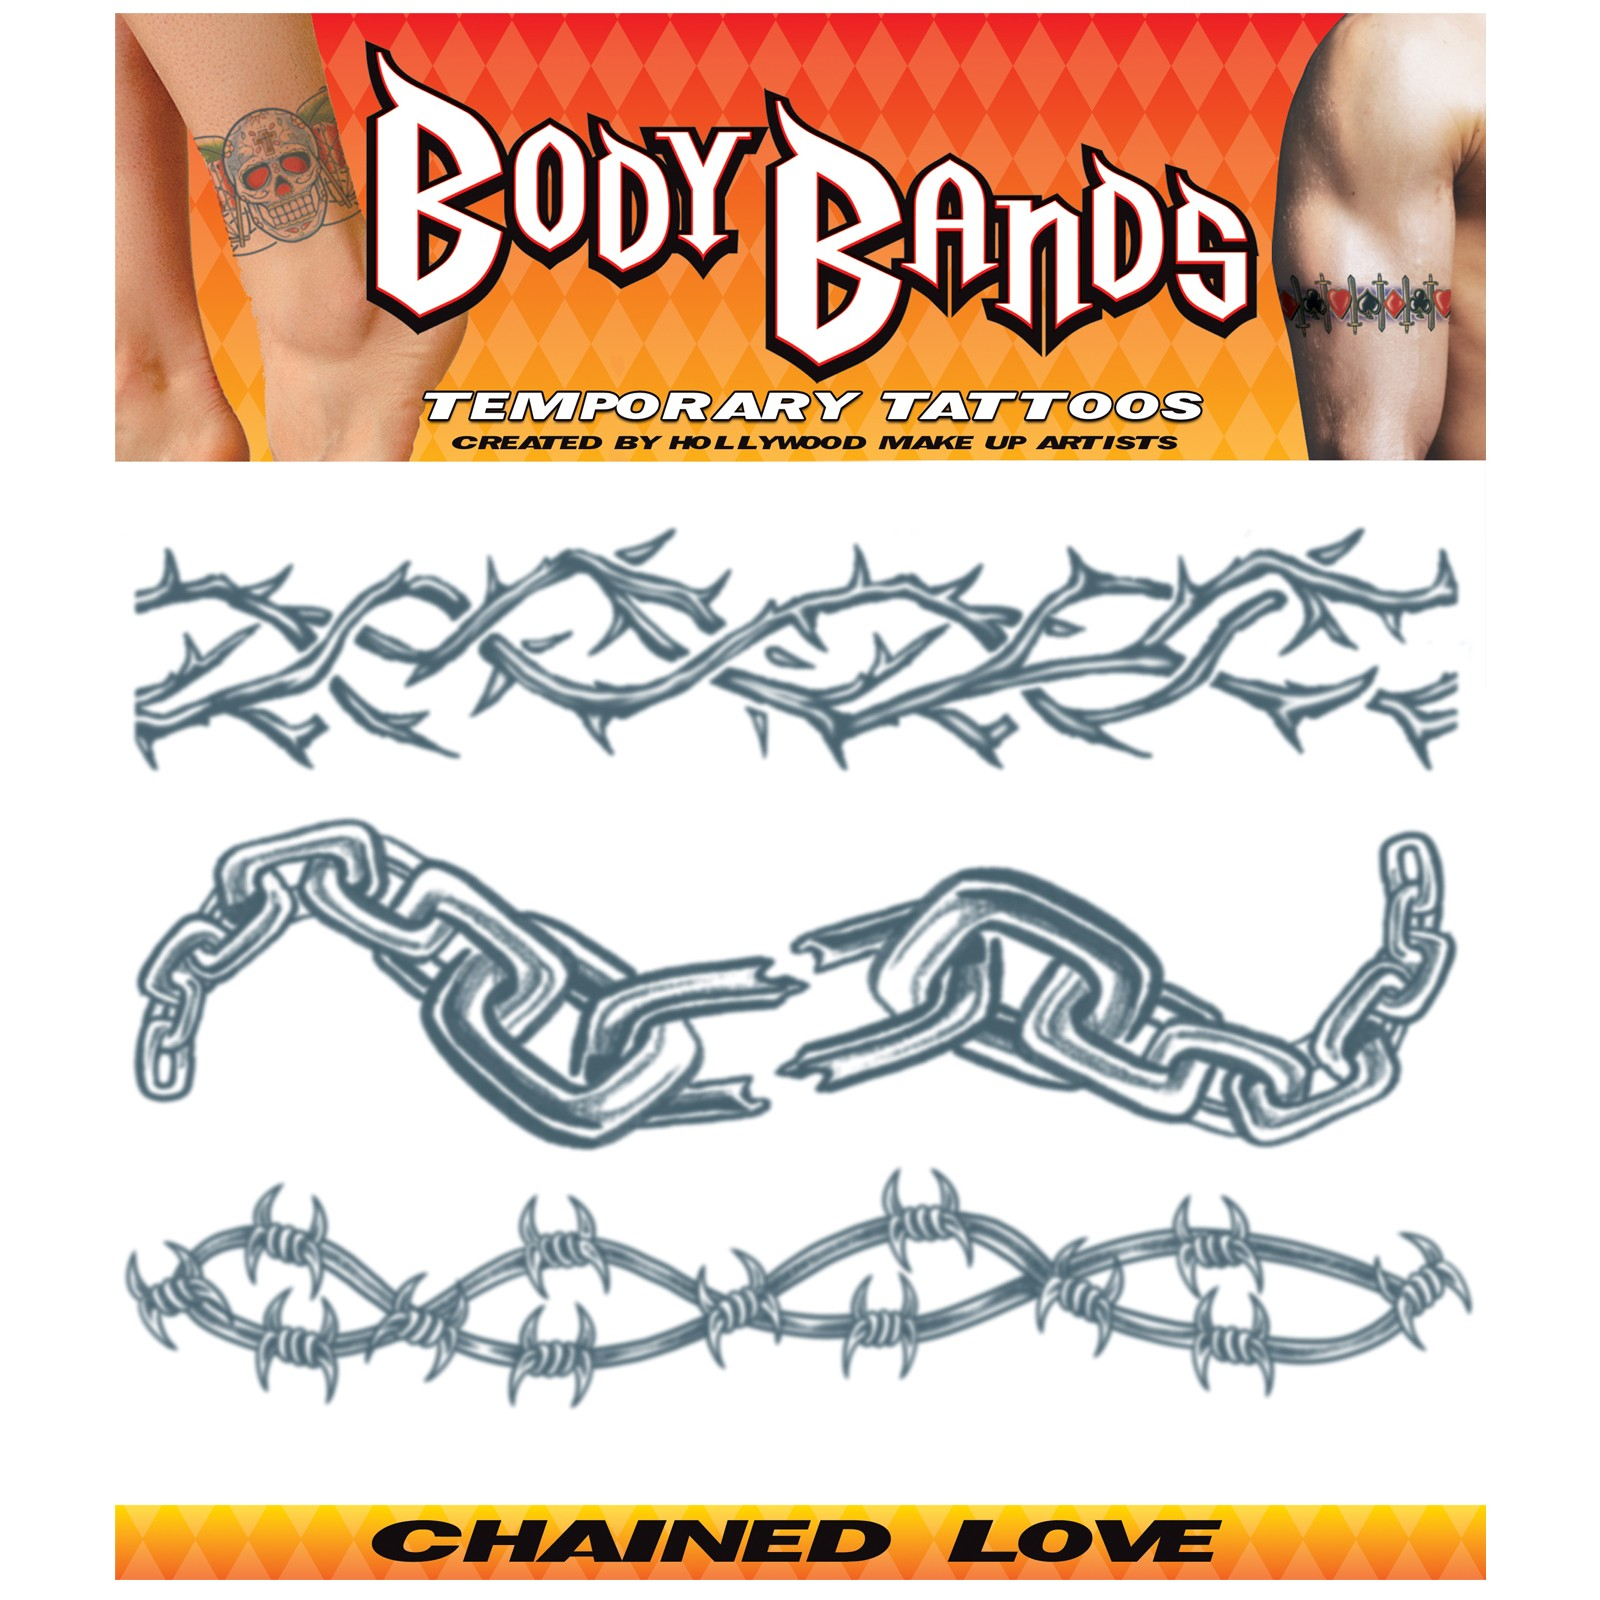 Chain Link Tattoo: Chain Link Armband Tattoo • Arm Tattoo Sites